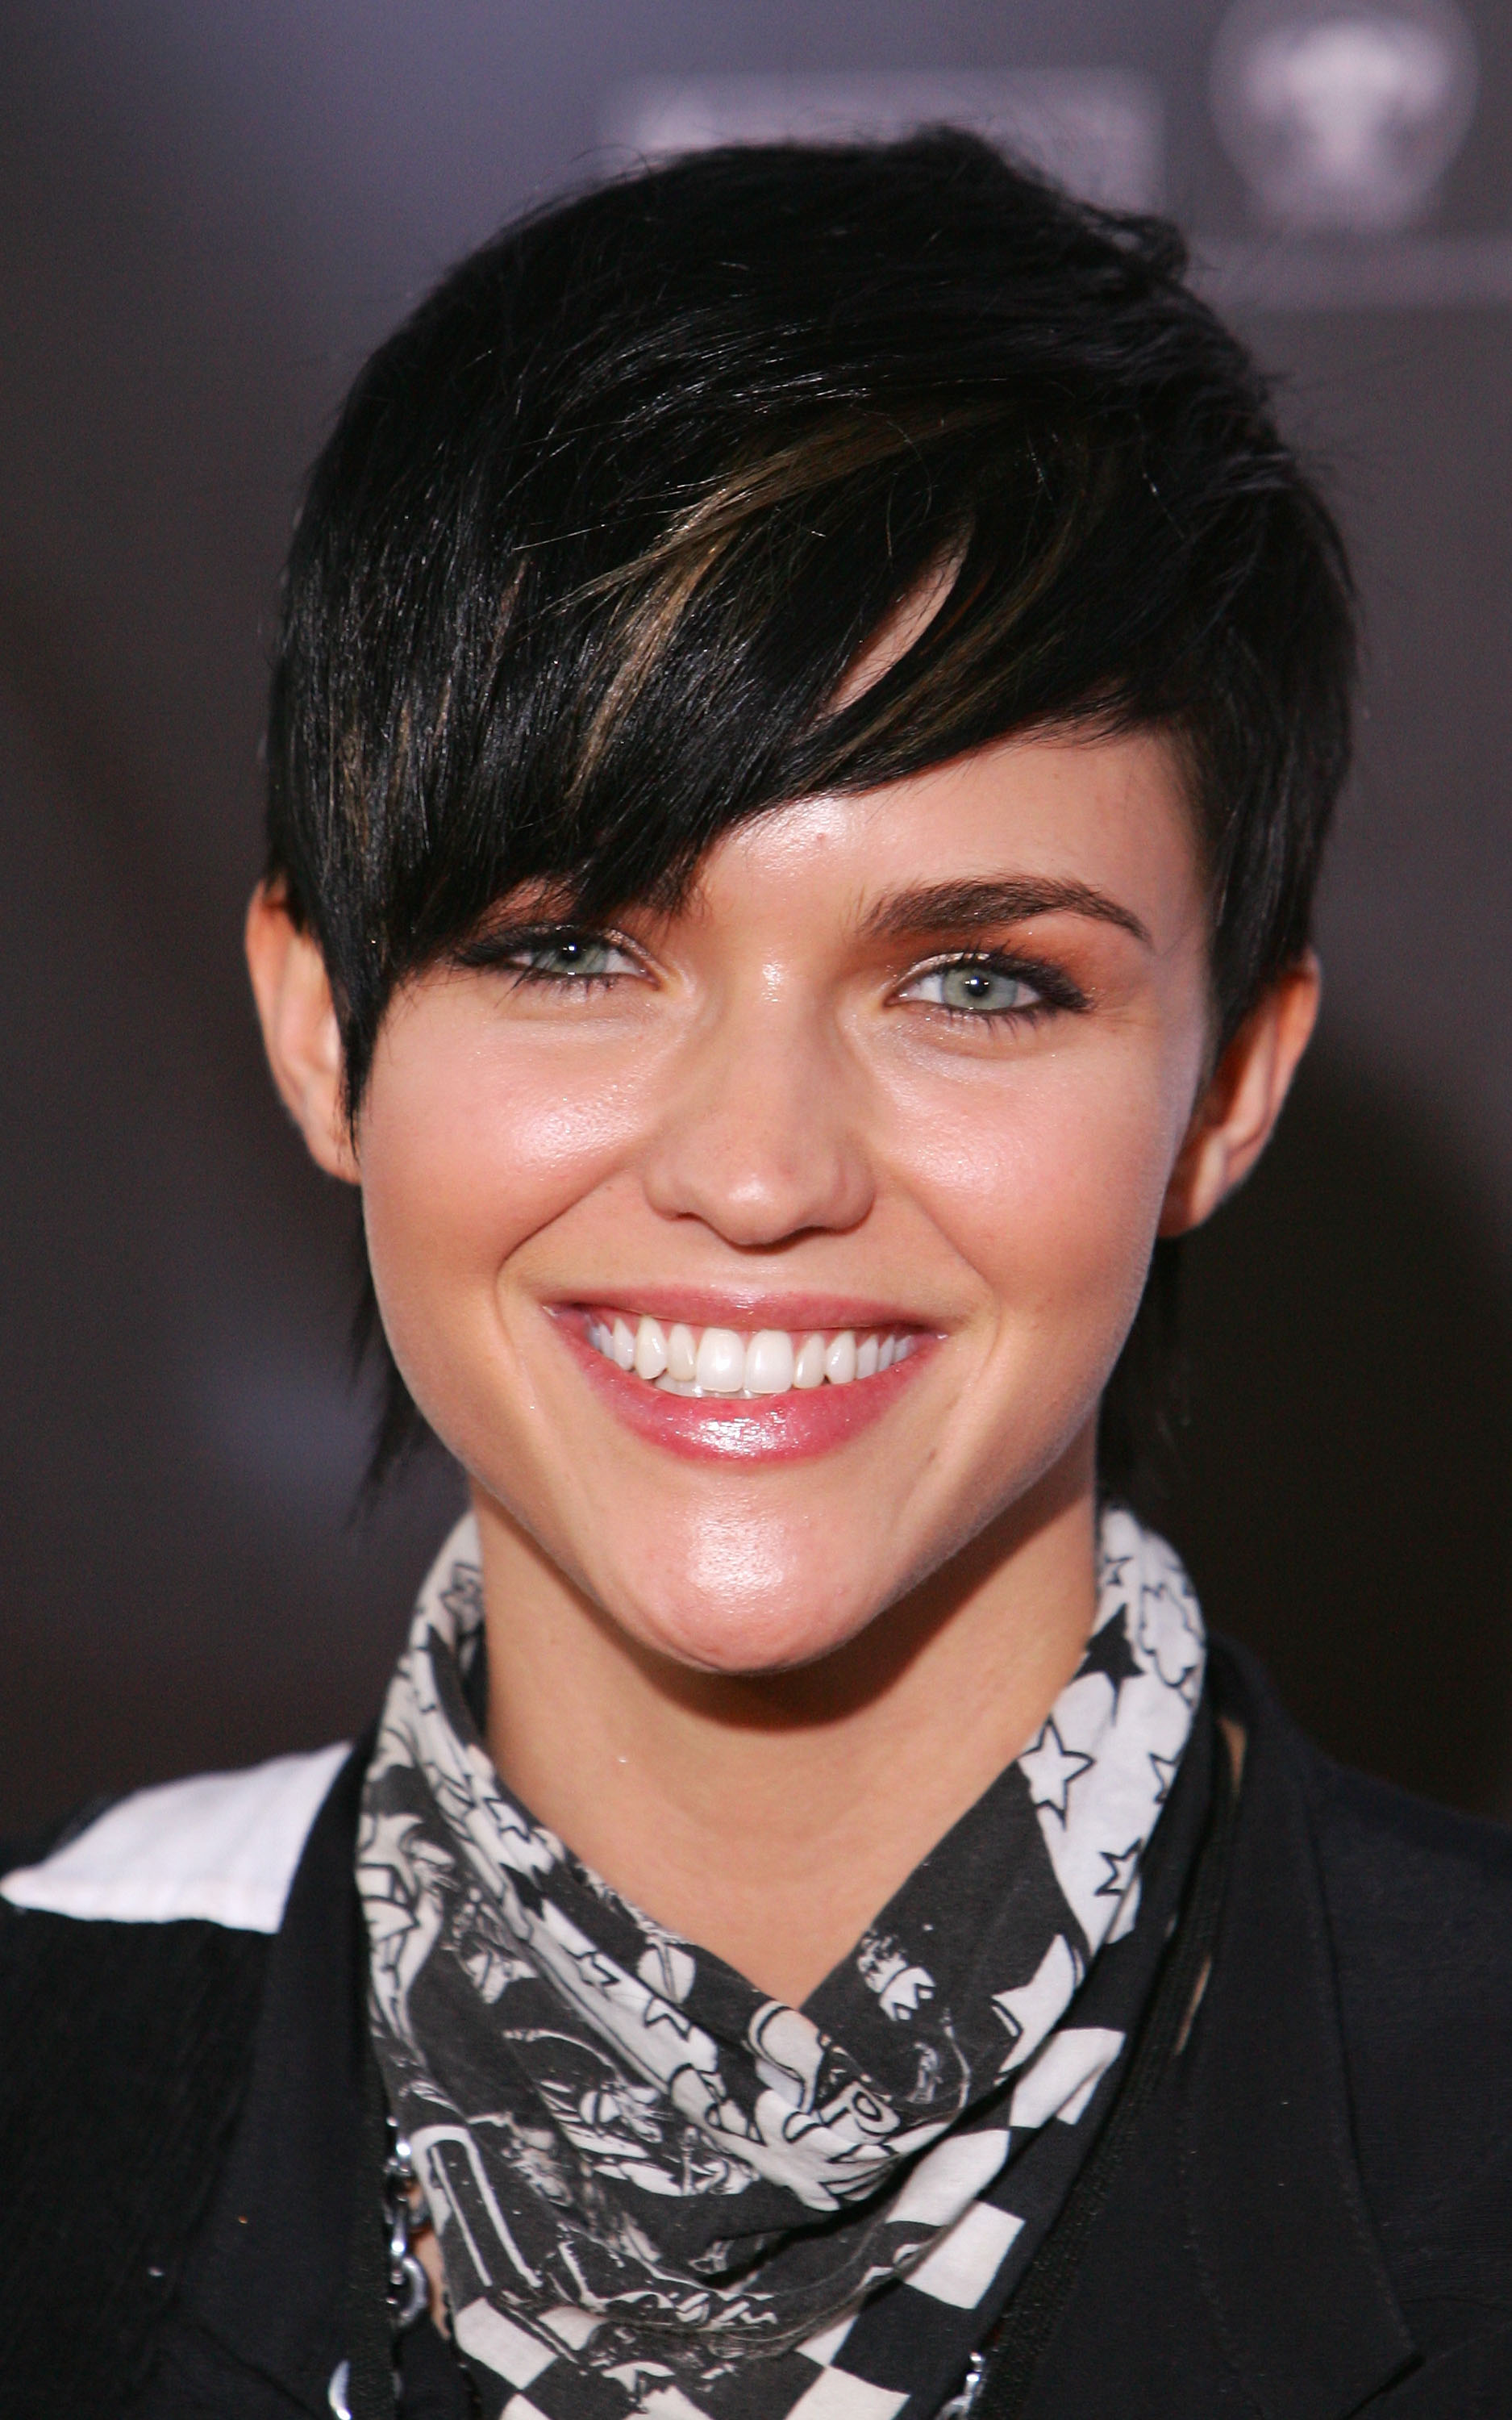 Pixie Haircut | The Ultimate Pixie Cuts Guide